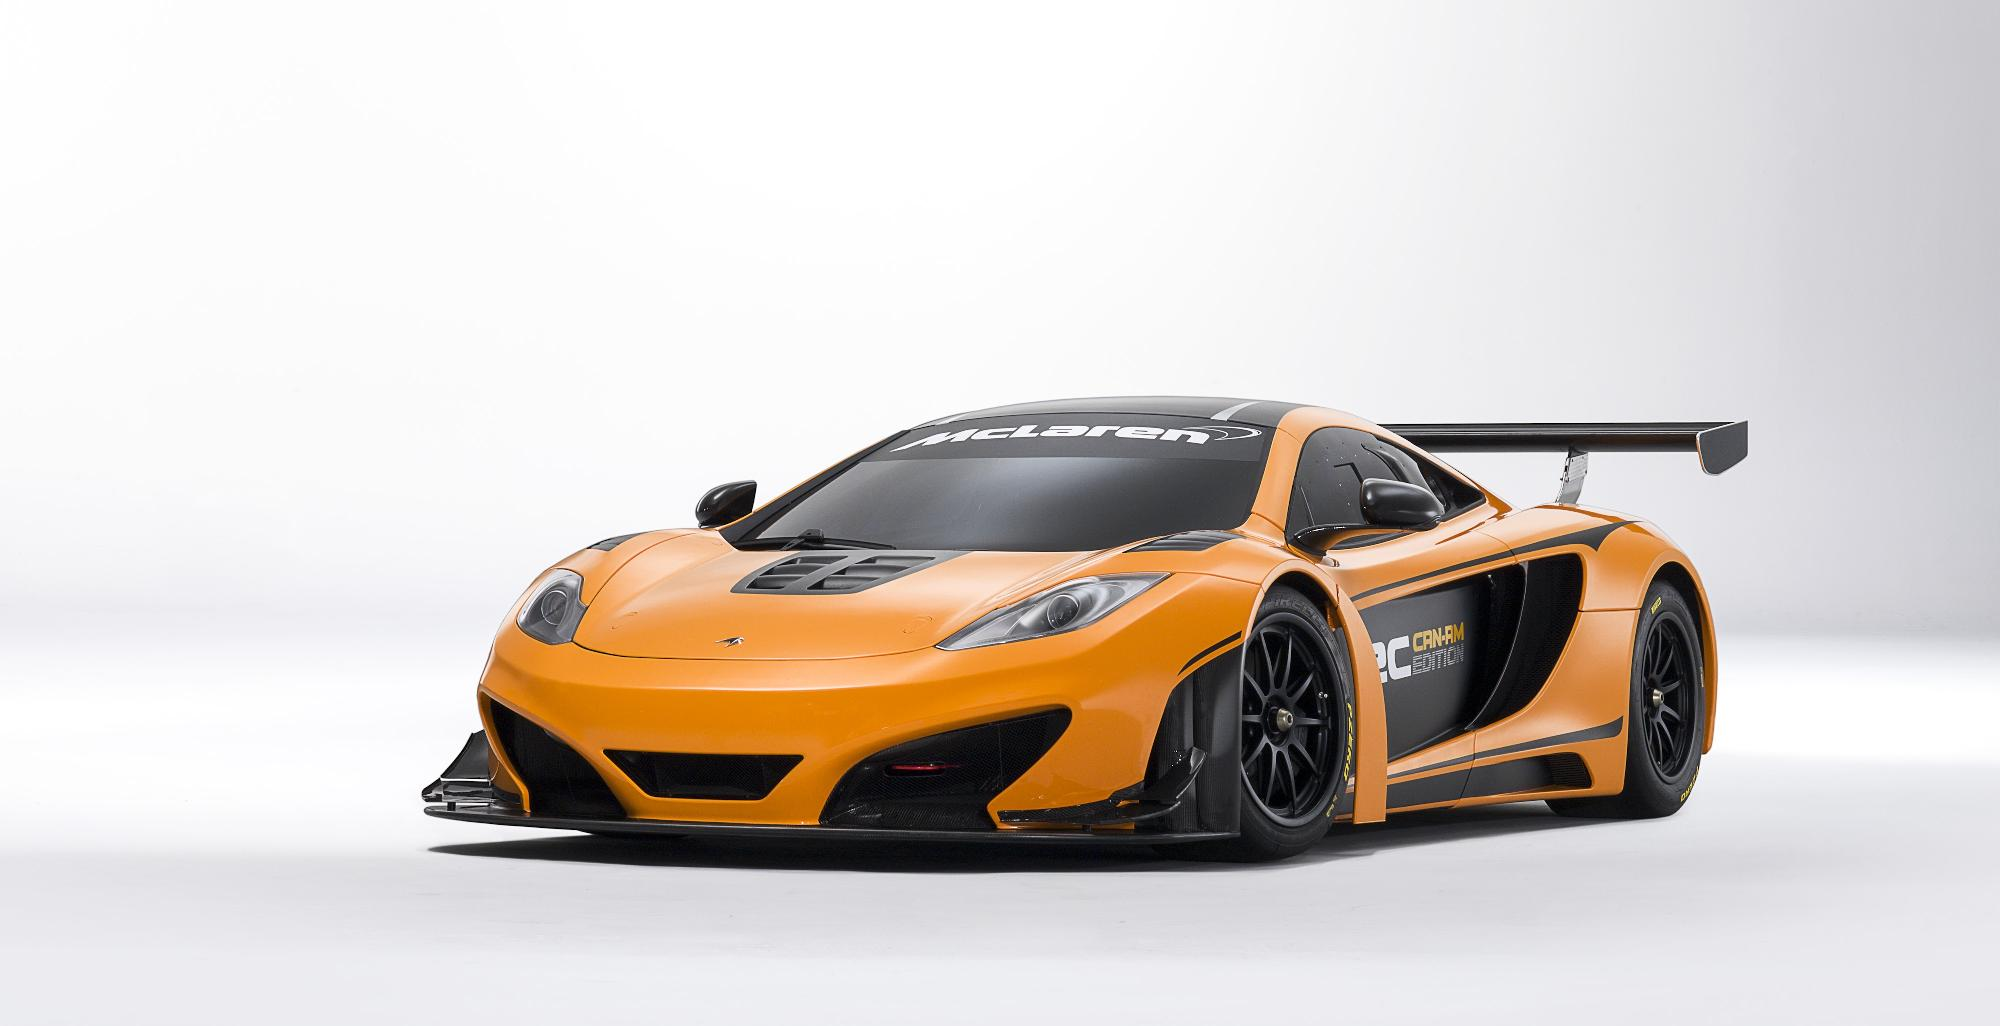 McLaren MP4-12C Can-Am